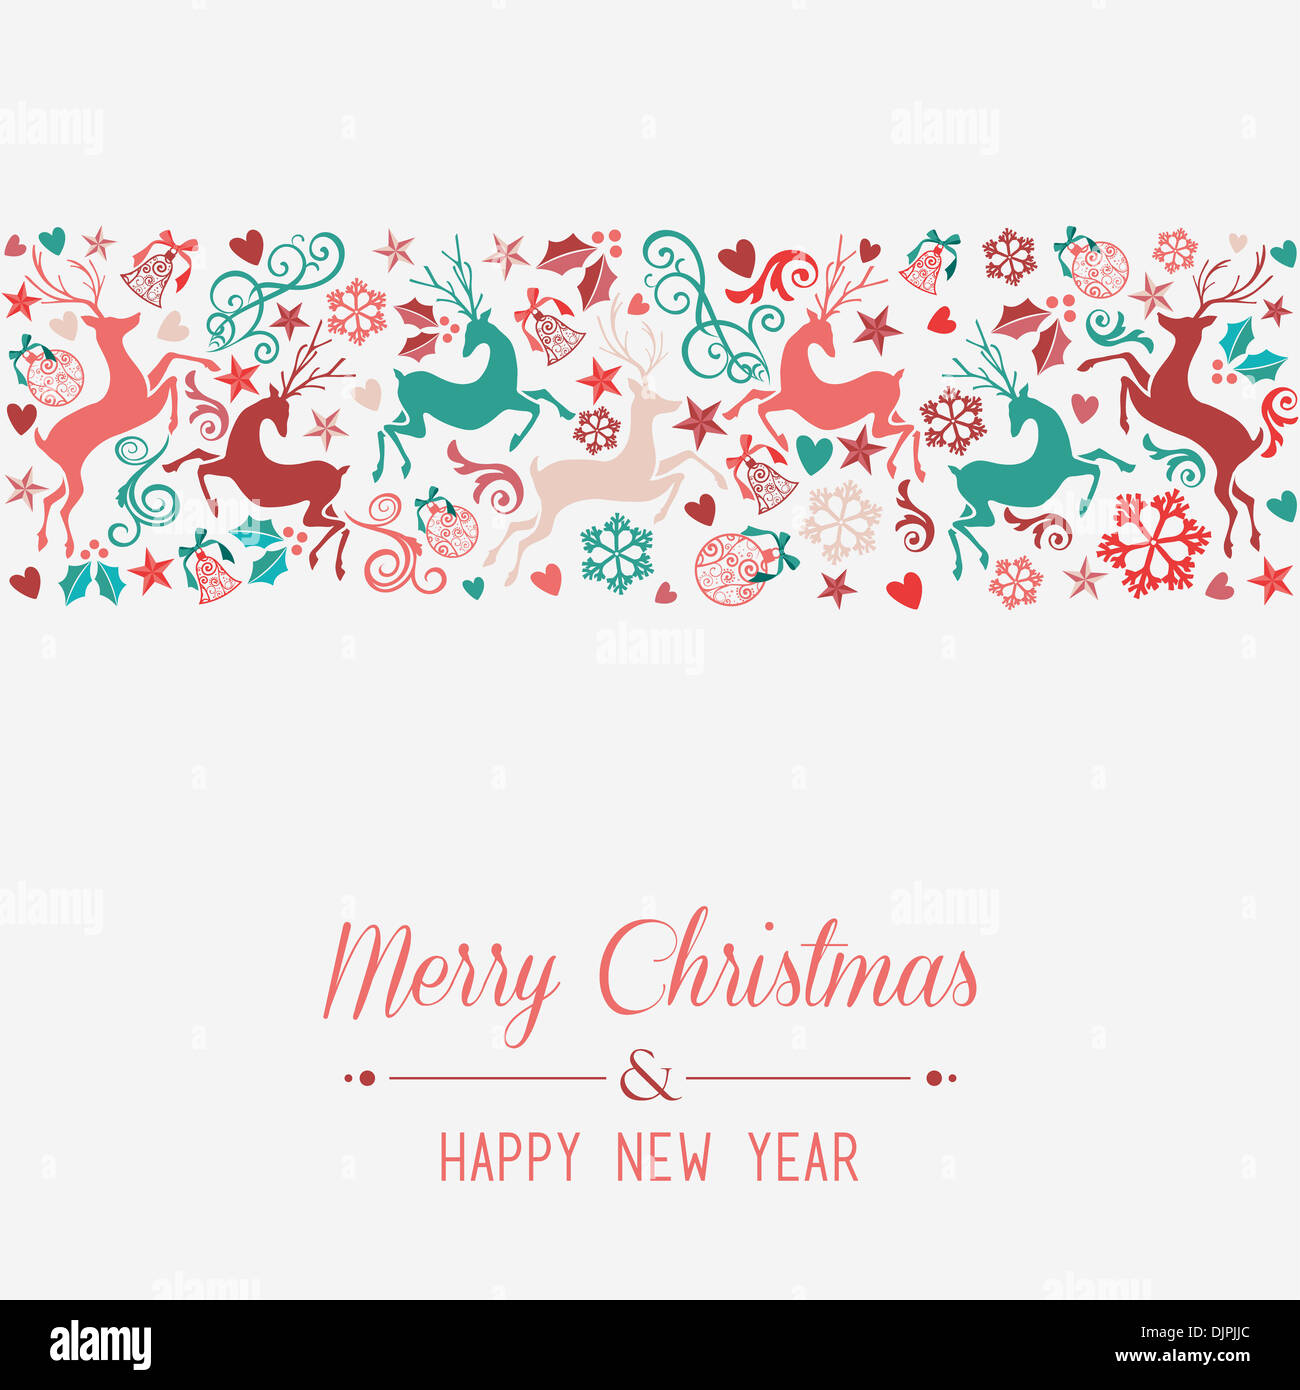 Merry christmas and happy new year banner greeting card background merry christmas and happy new year banner greeting card background eps10 vector file organized in layers for easy editing m4hsunfo